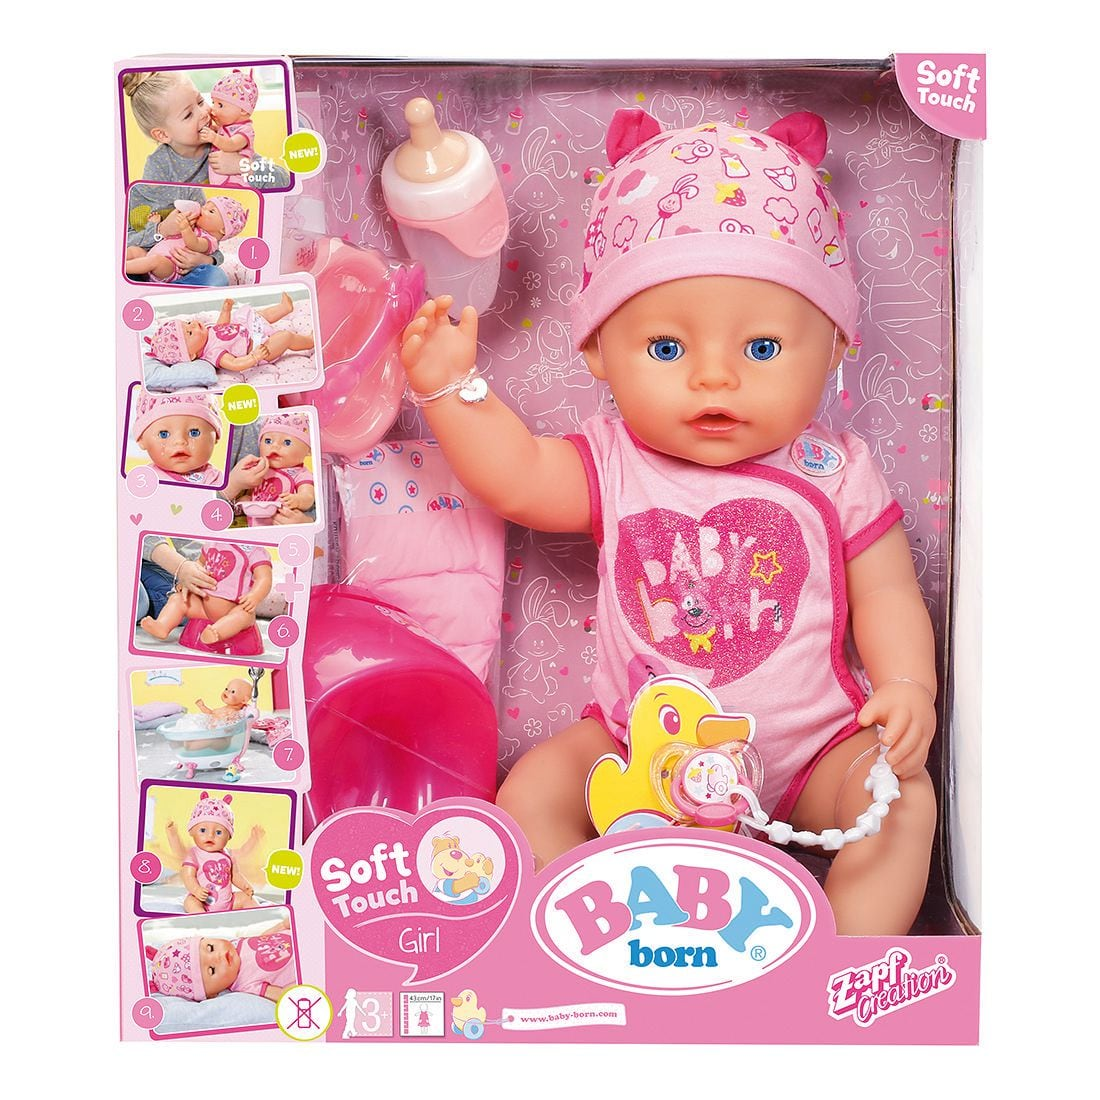 Baby Born Soft Touch Doll - Girl